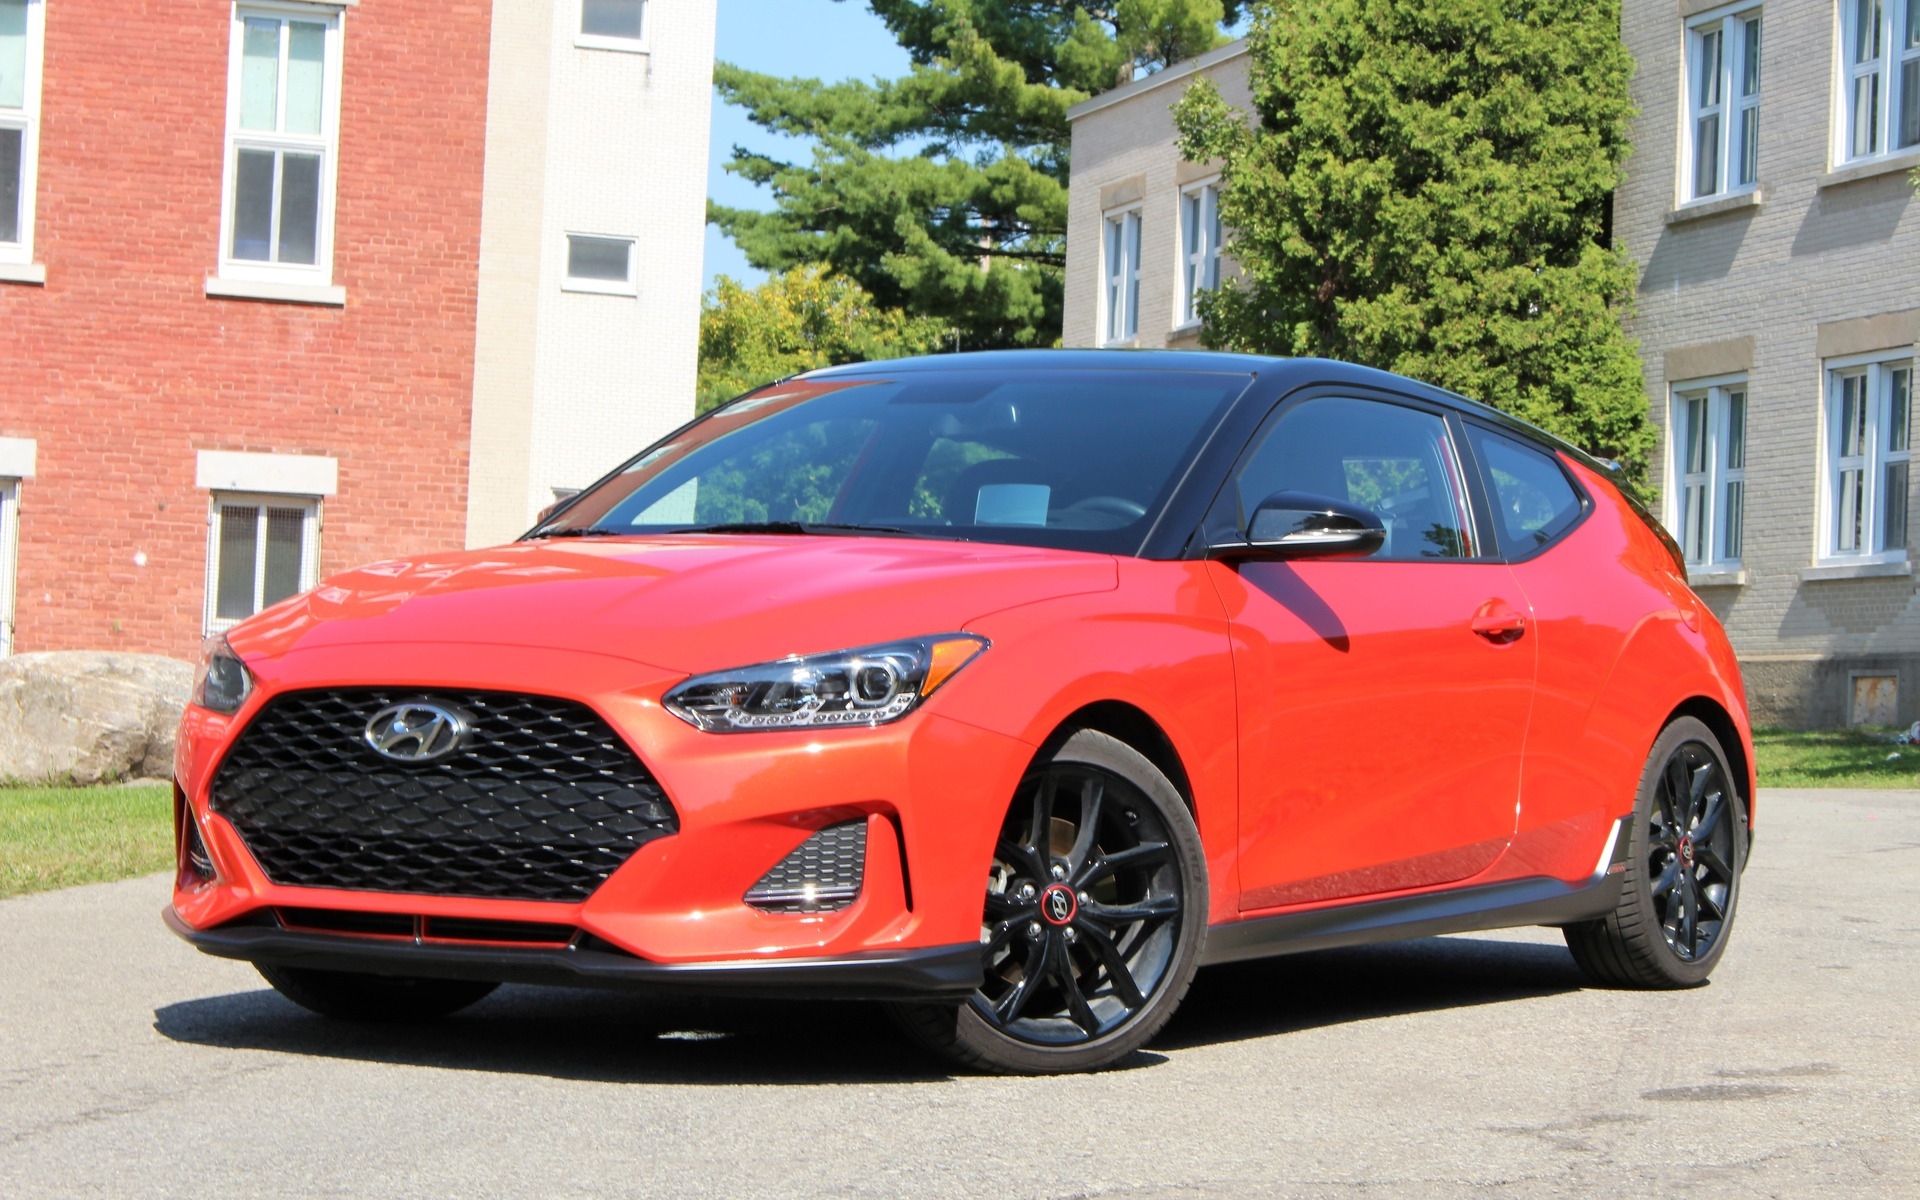 2019 Hyundai Veloster Turbo: a GT, but not a GTI - The Car ...